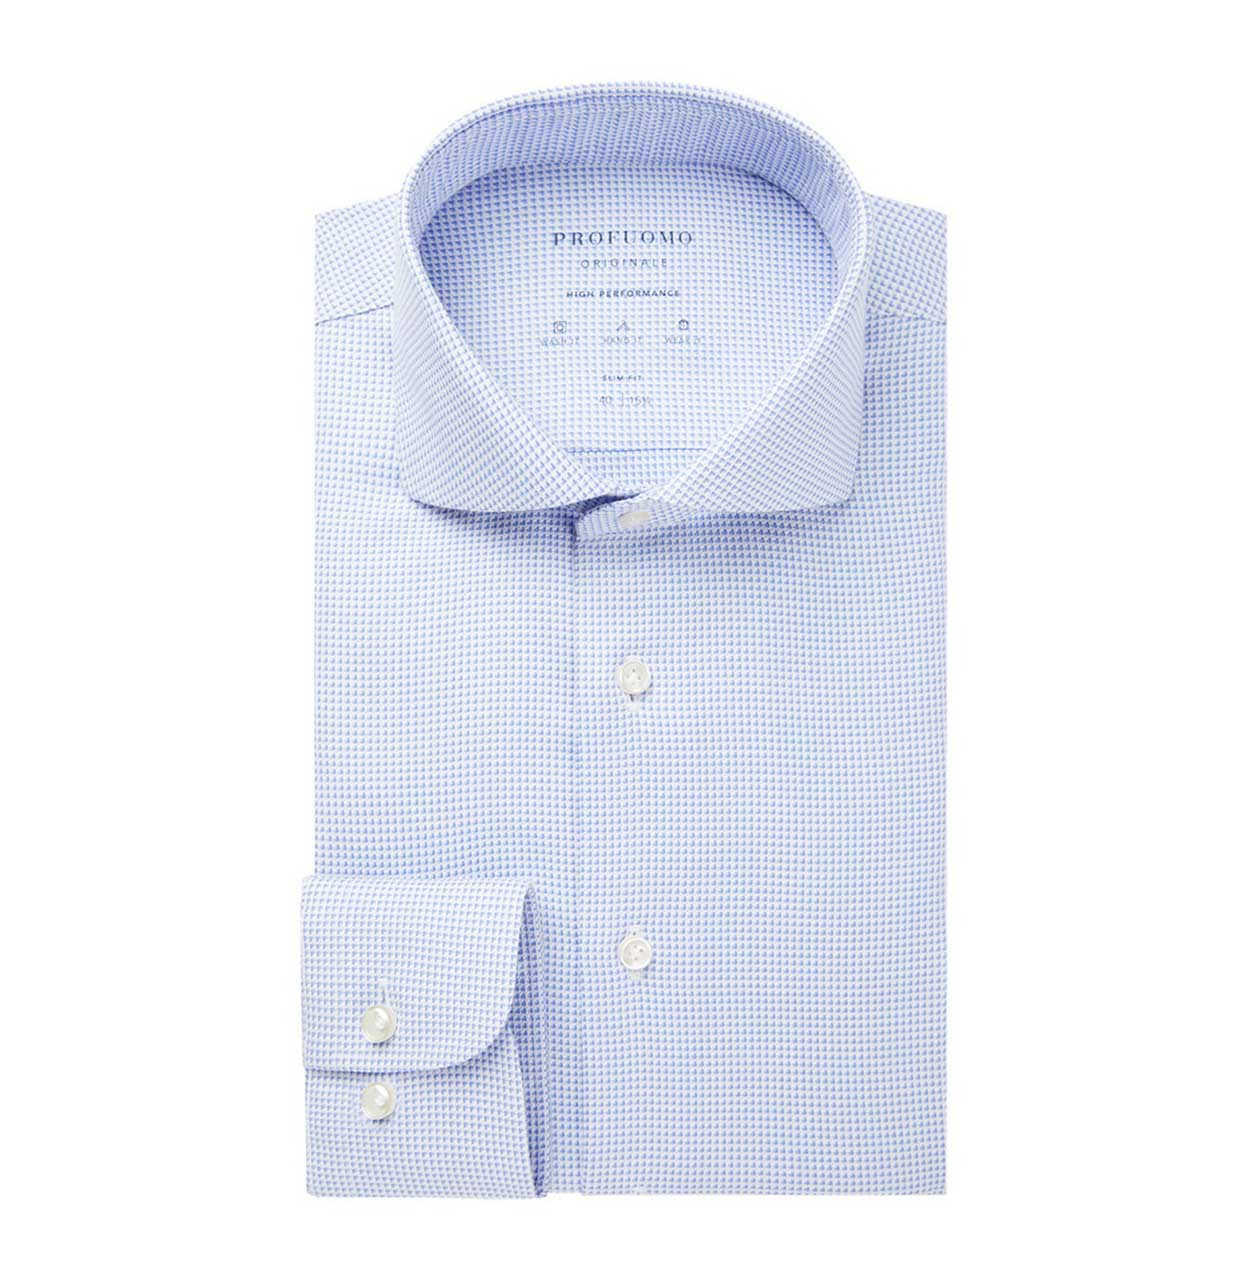 Profuomo Shirt PPSH1A1050 M PPSH1A1050 blauw Maat 37